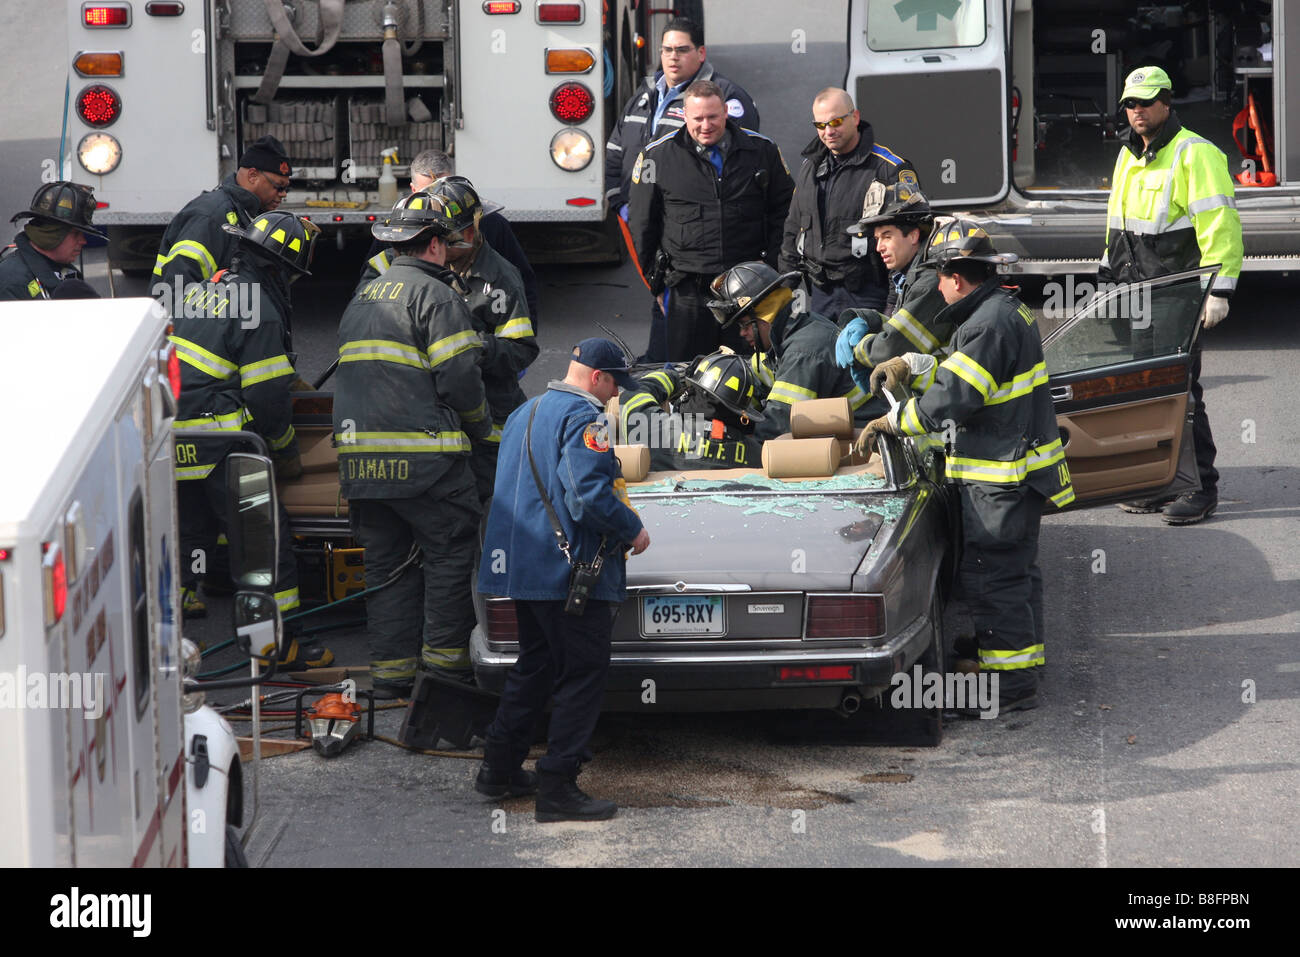 Firefighters extricate a woman from a Jaguar auto after cutting the roof off following a crash with a tractor trailer. - Stock Image